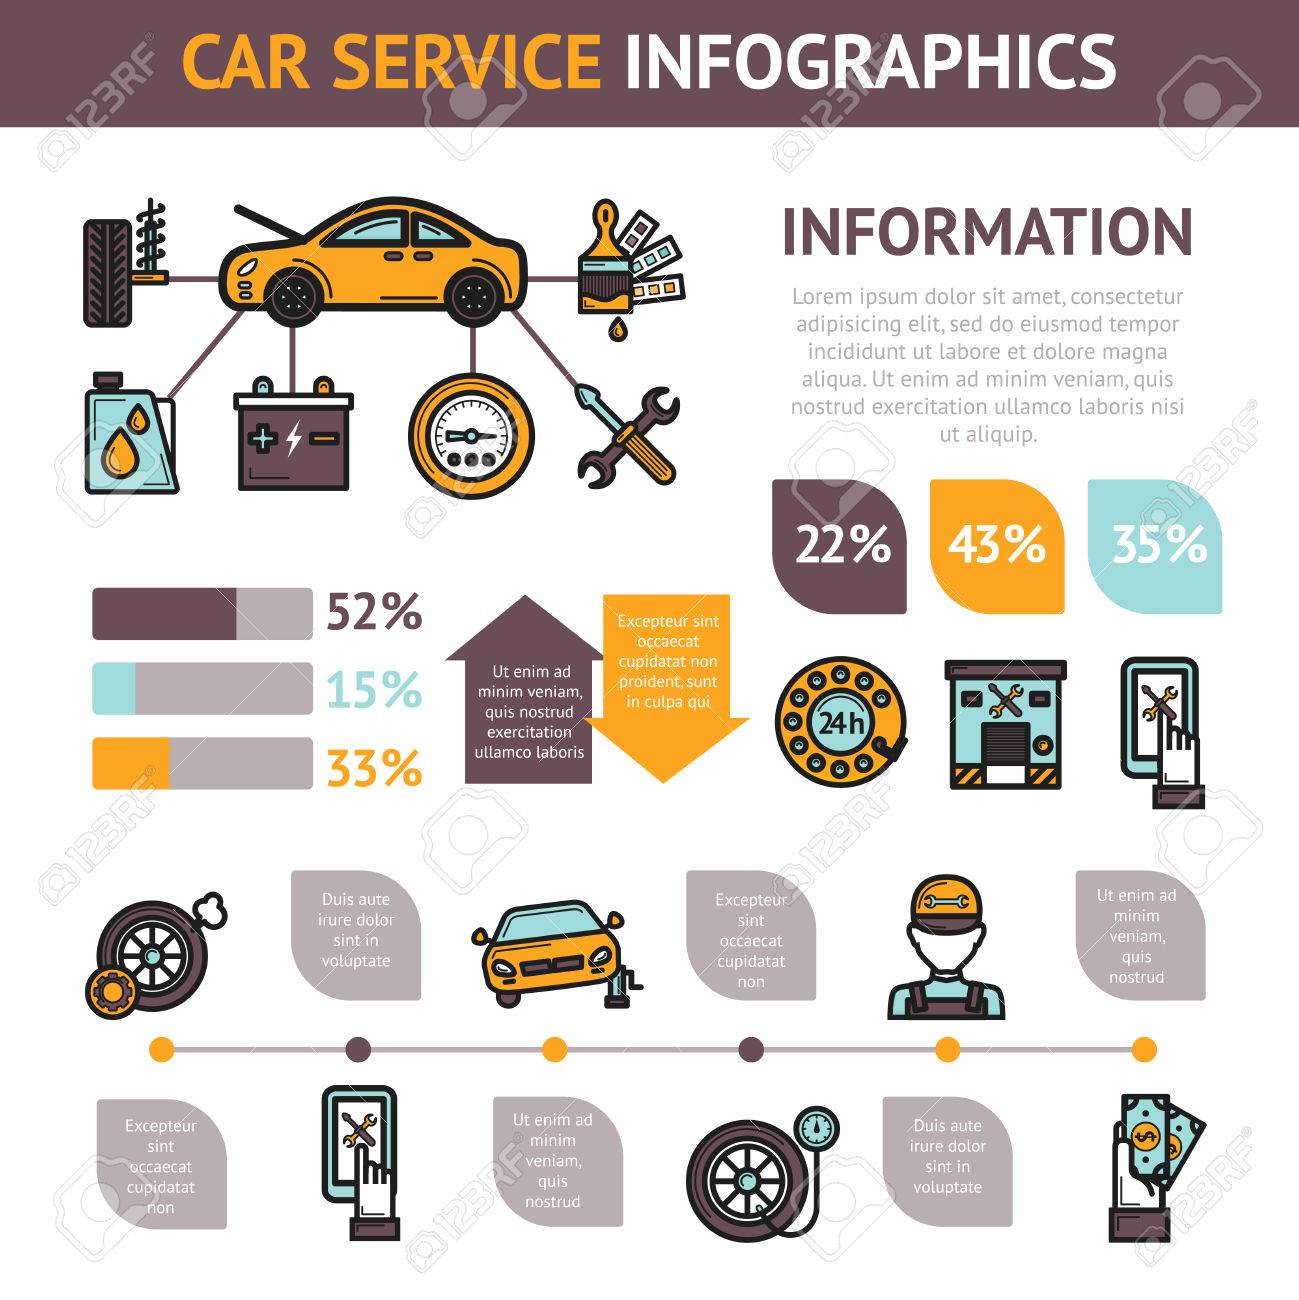 36520181-car-service-infographics-set-wi